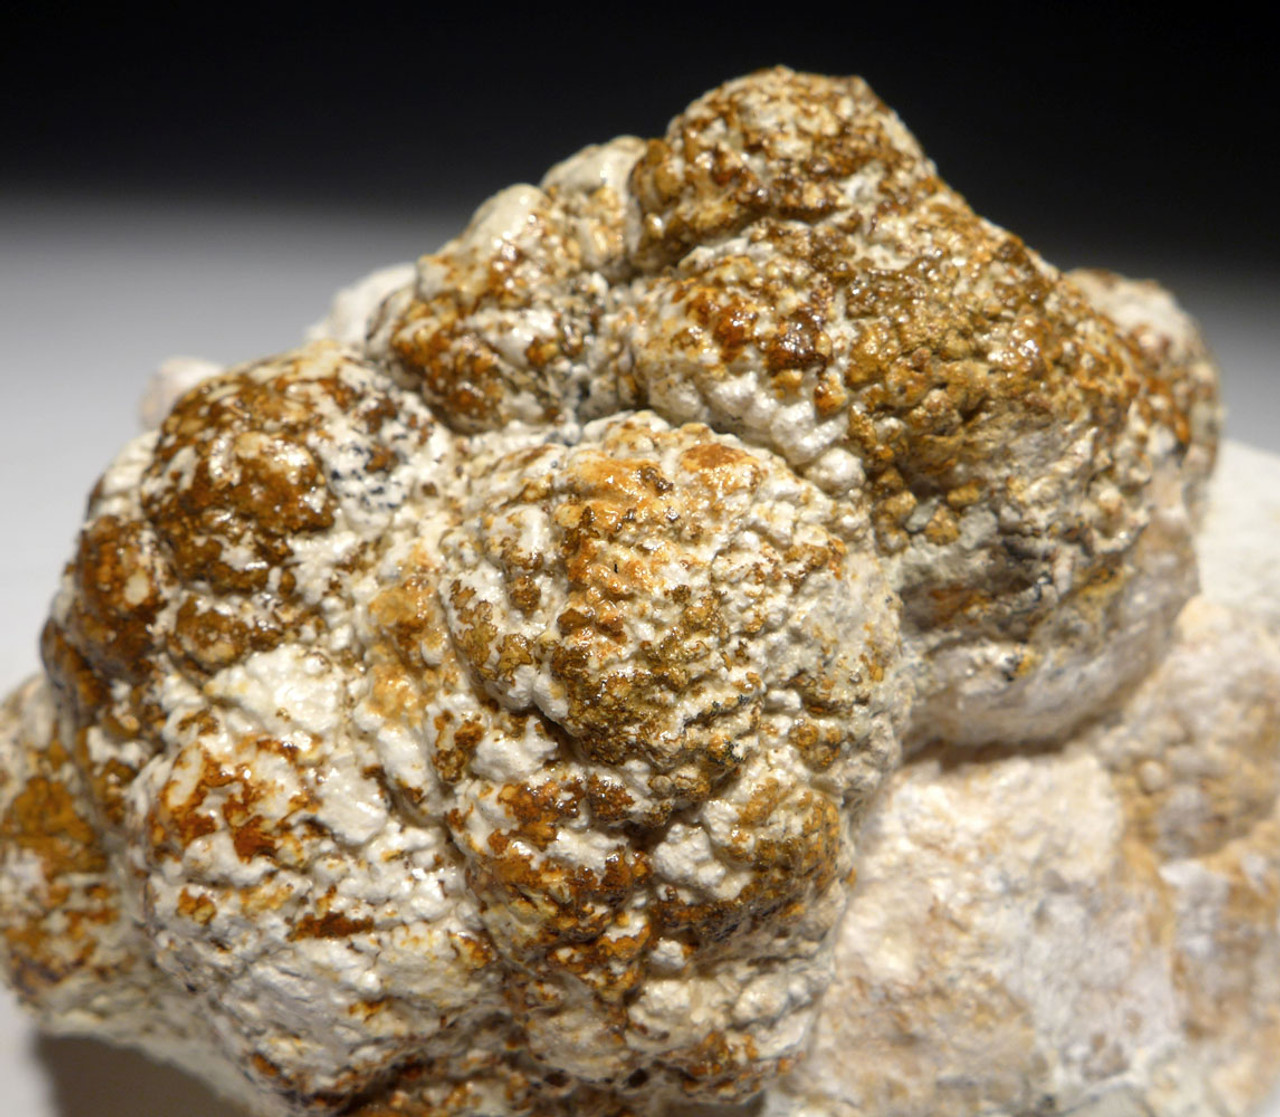 OLIGOCENE FOSSIL STROMATOLITE CYANOBACTERIA BALL COLONIES FROM AN ANCIENT LAKE  *STR581